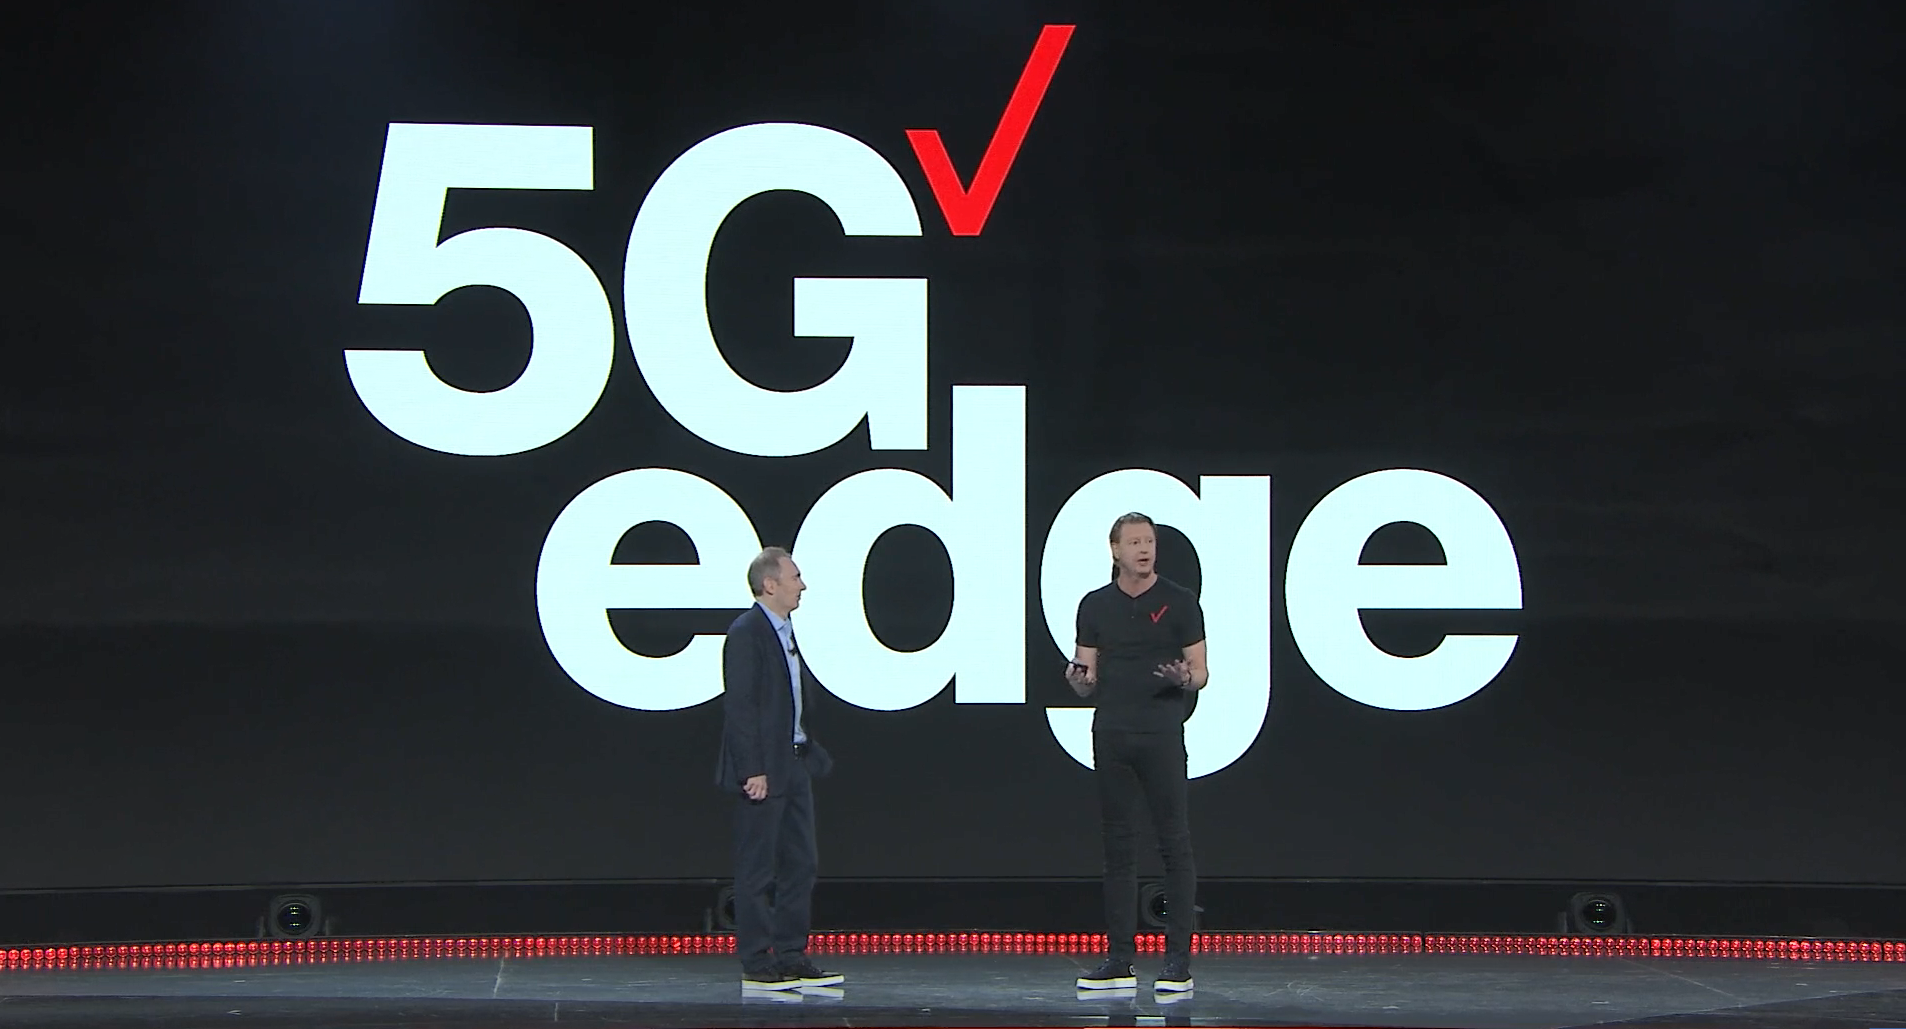 Verizon executive says 5G edge computing zones will be a game changer